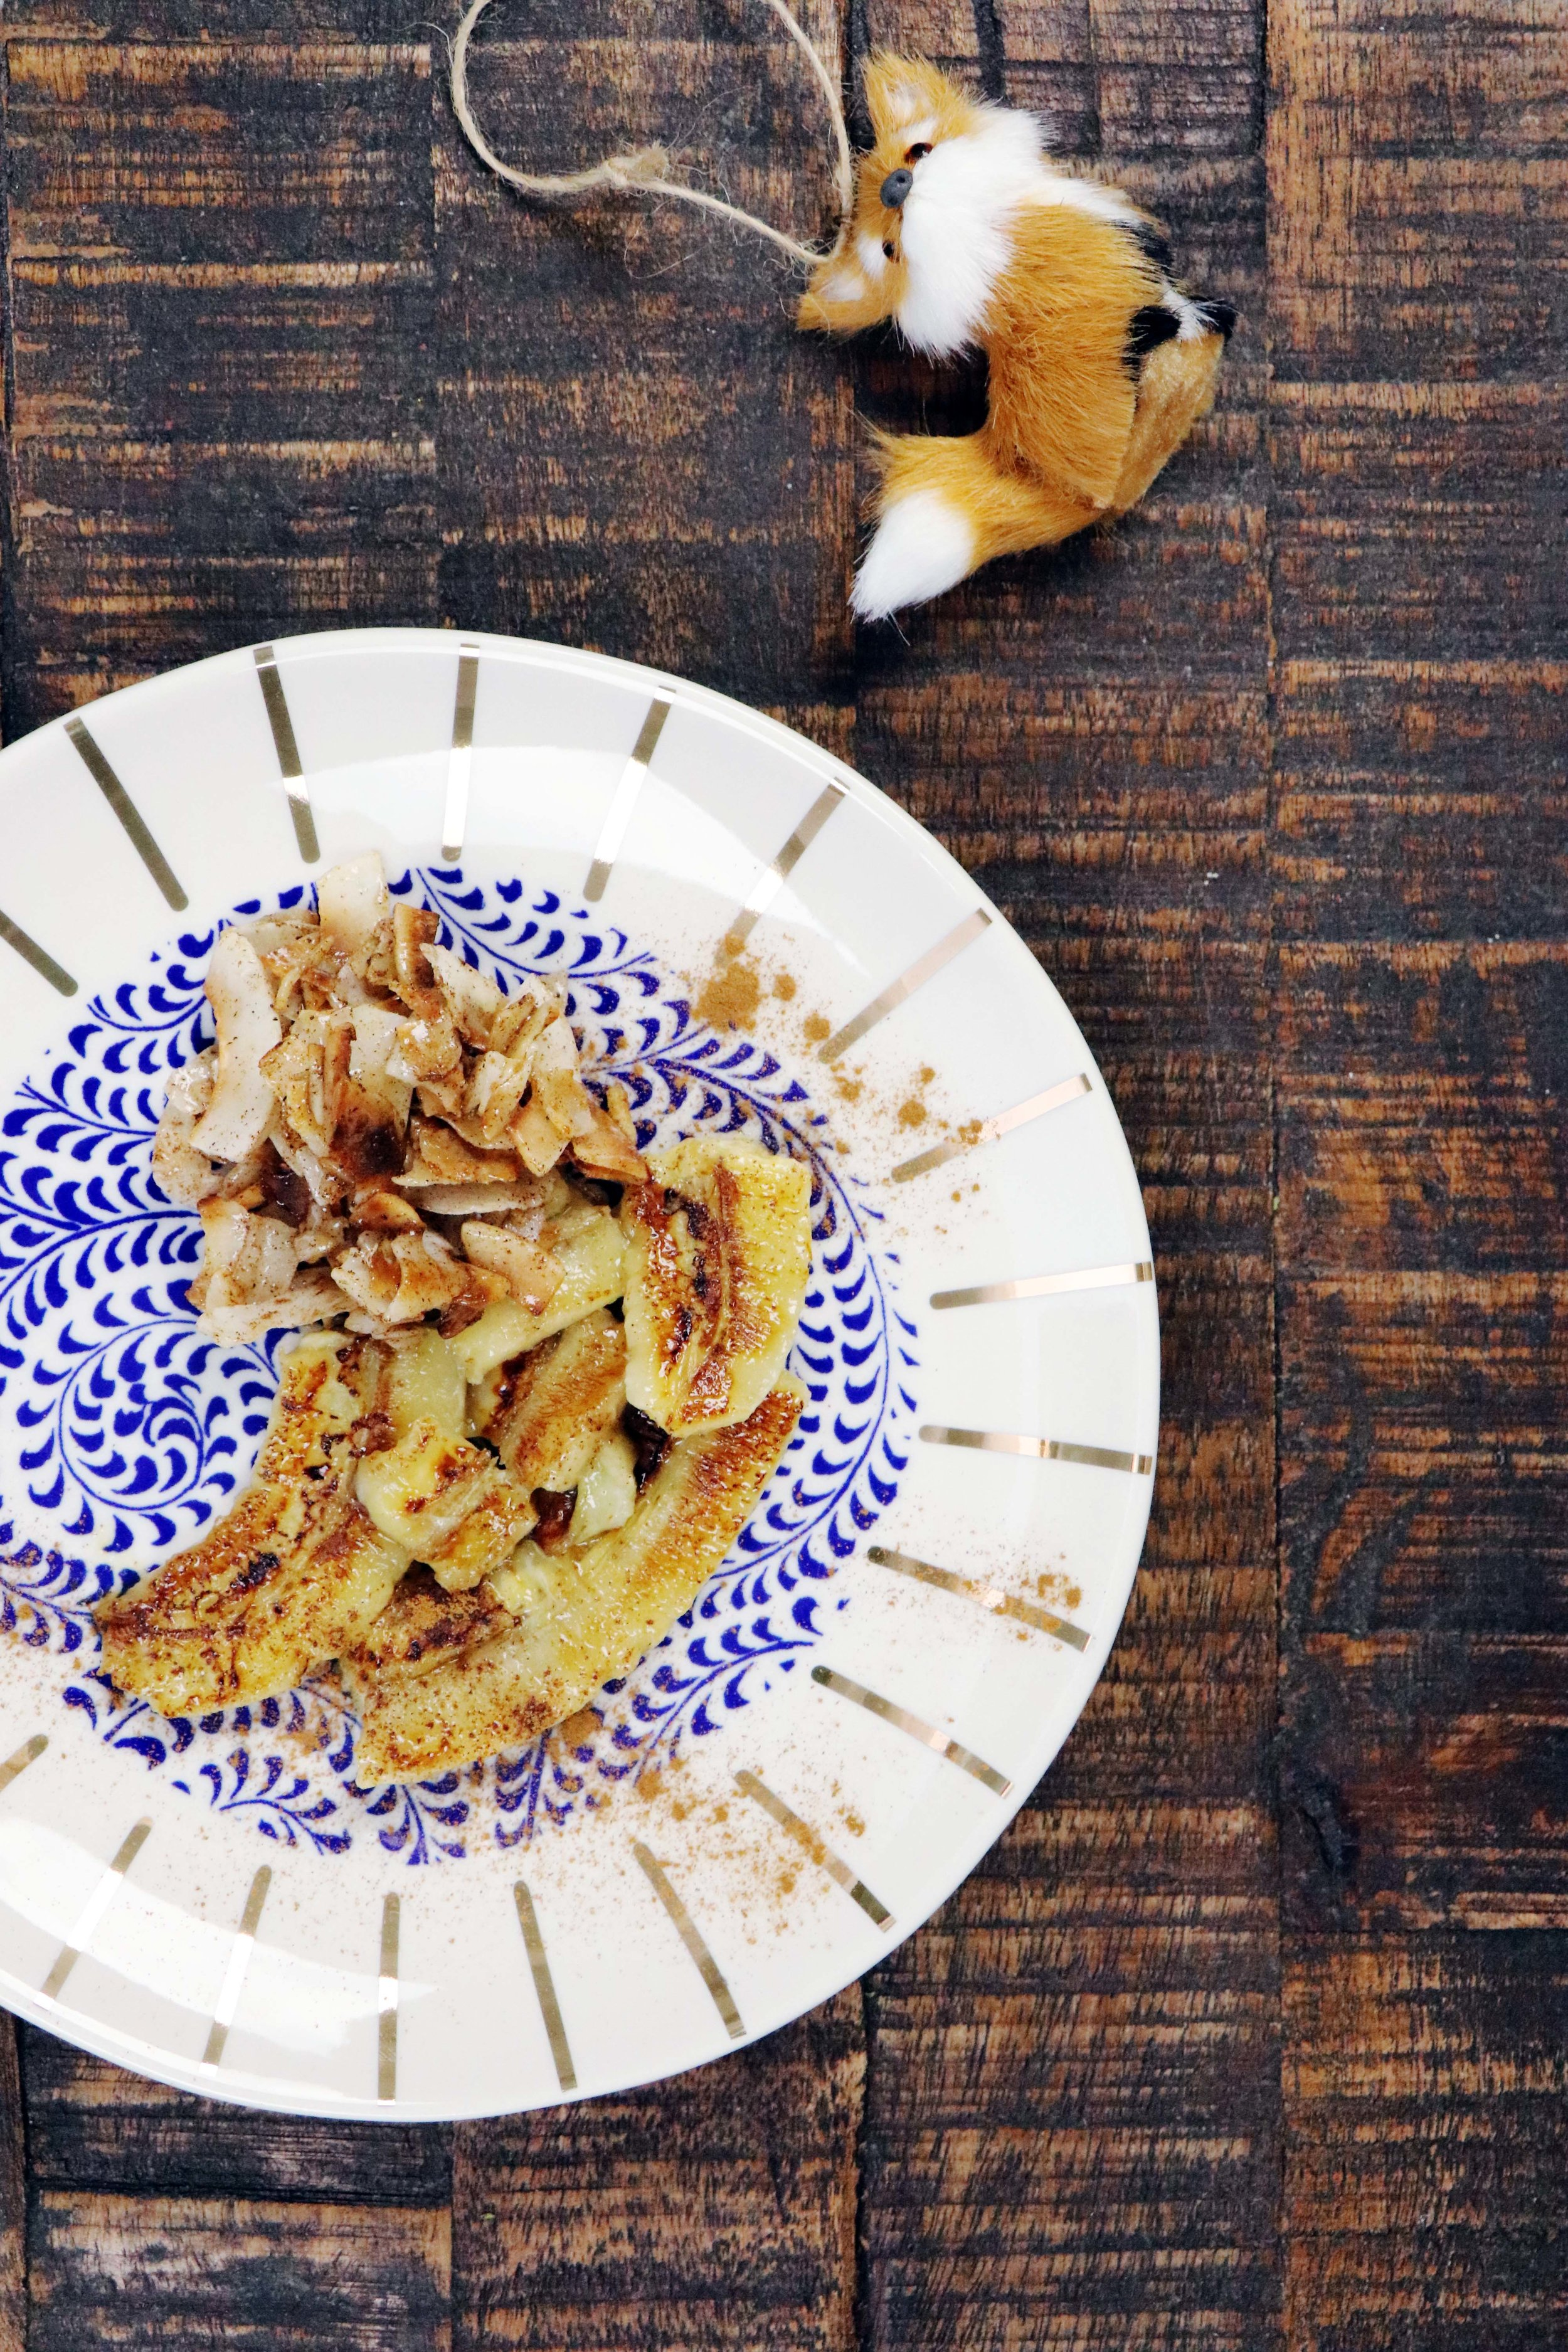 caramelized bananas with toasted coconut.jpg